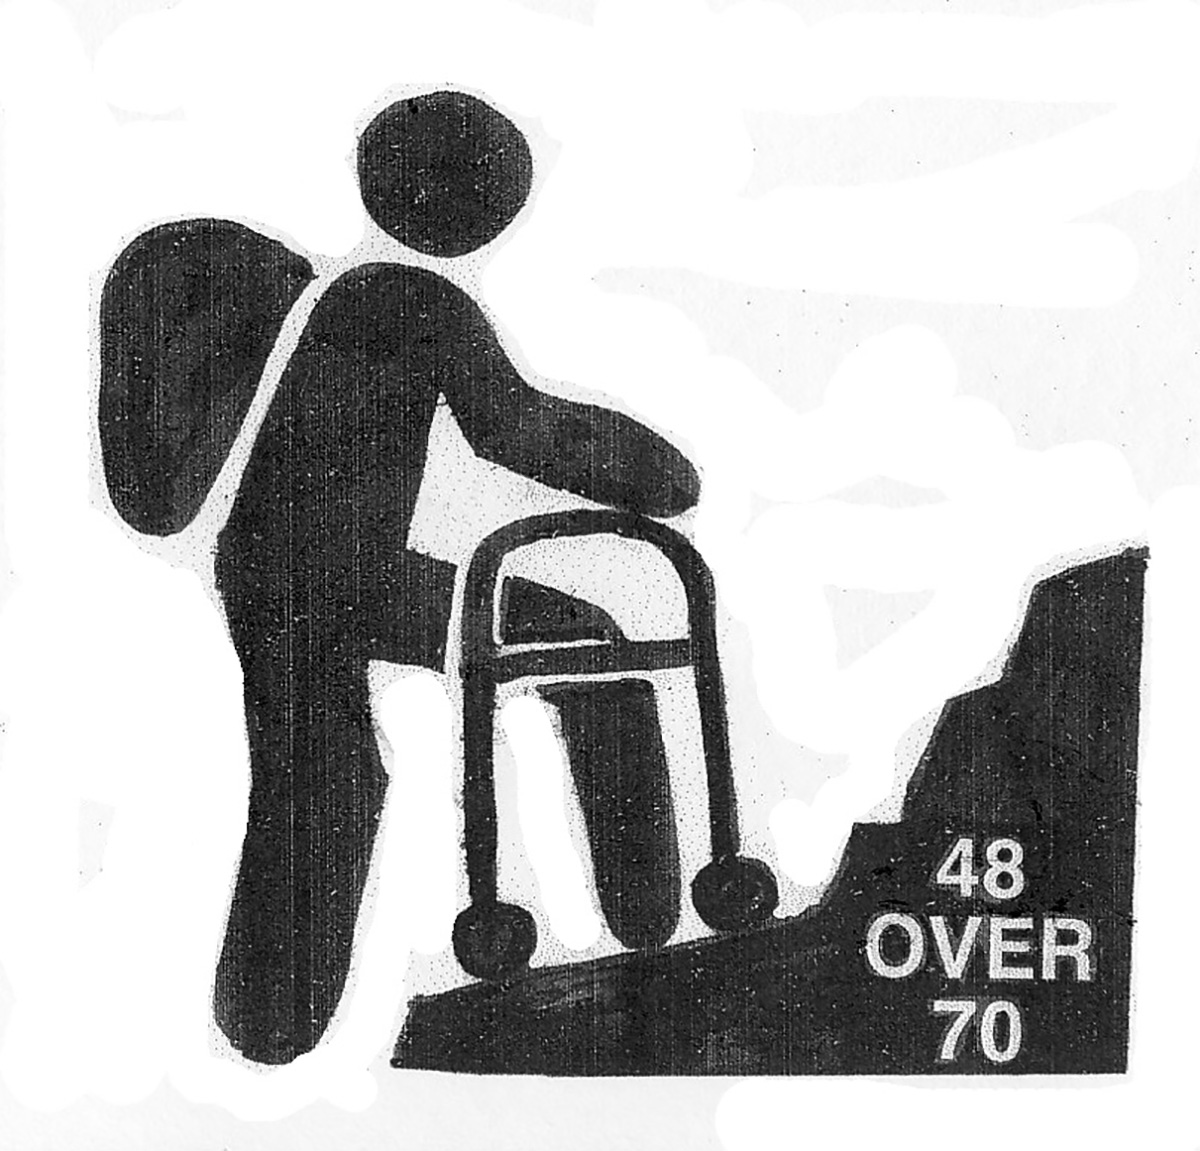 48 over 70